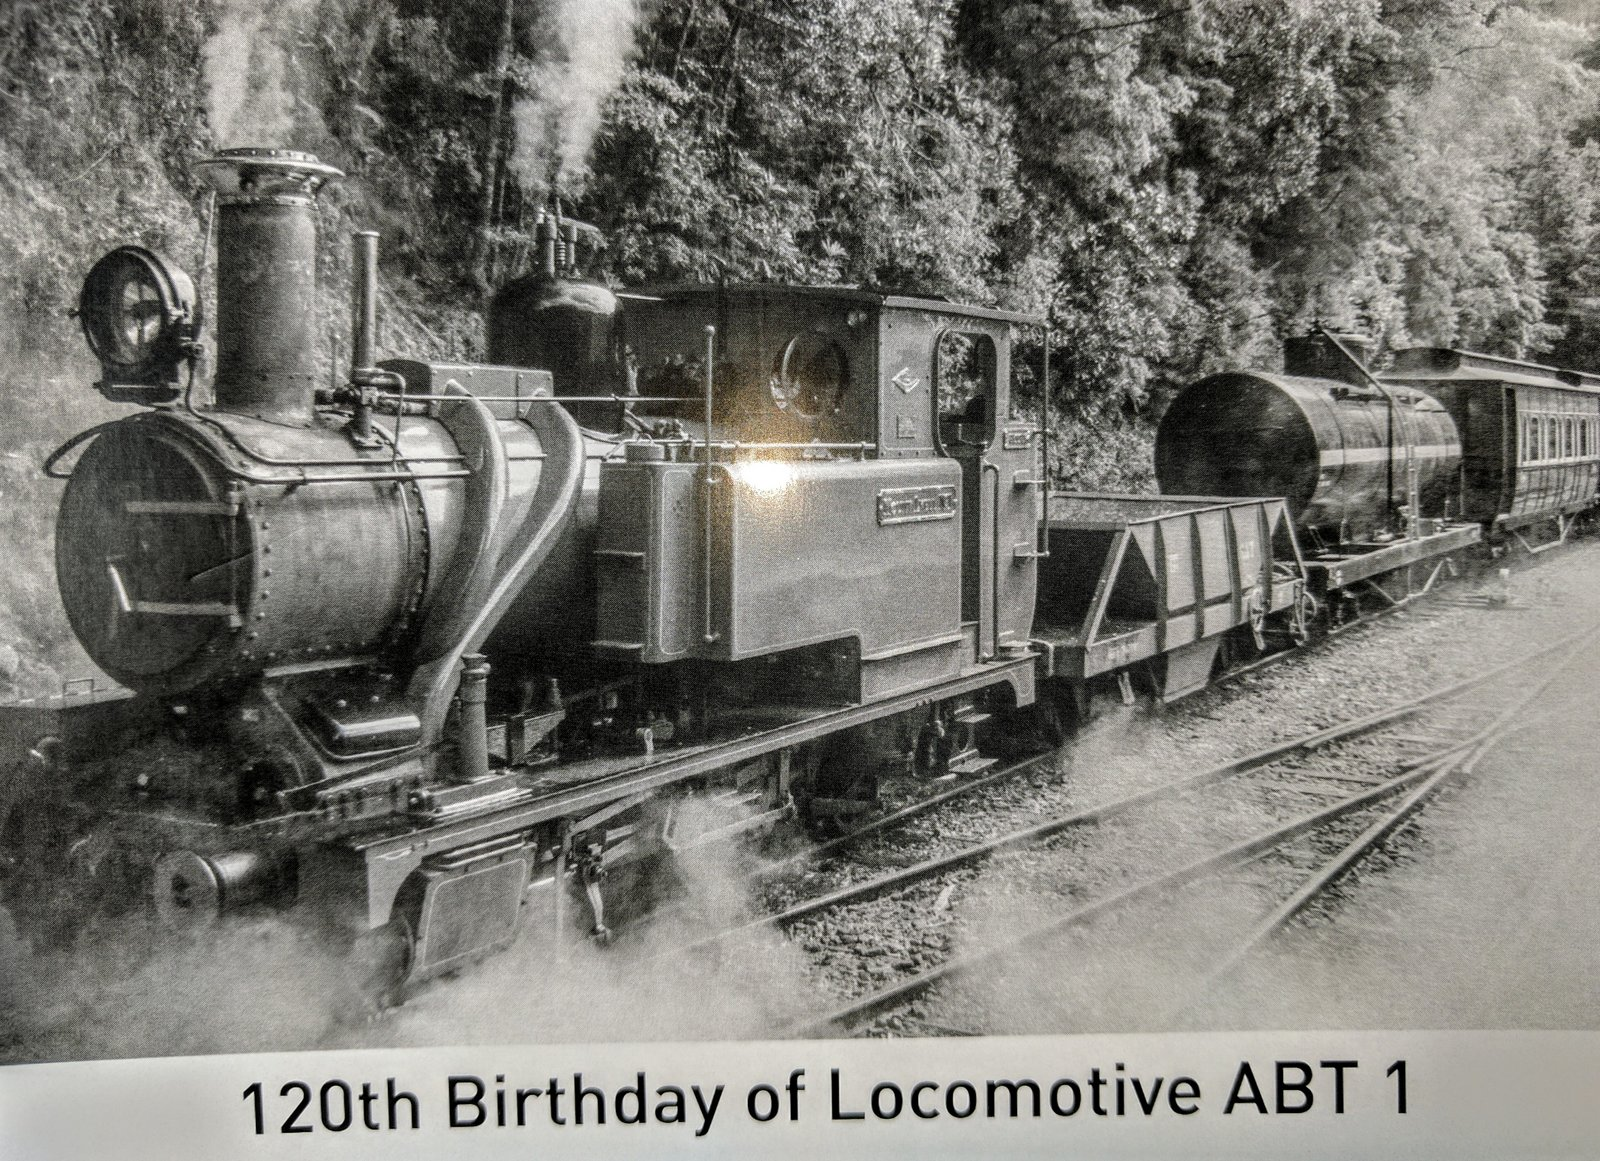 Each passenger travelling on locomotive No.1 that day was presented with a commemorative postcard